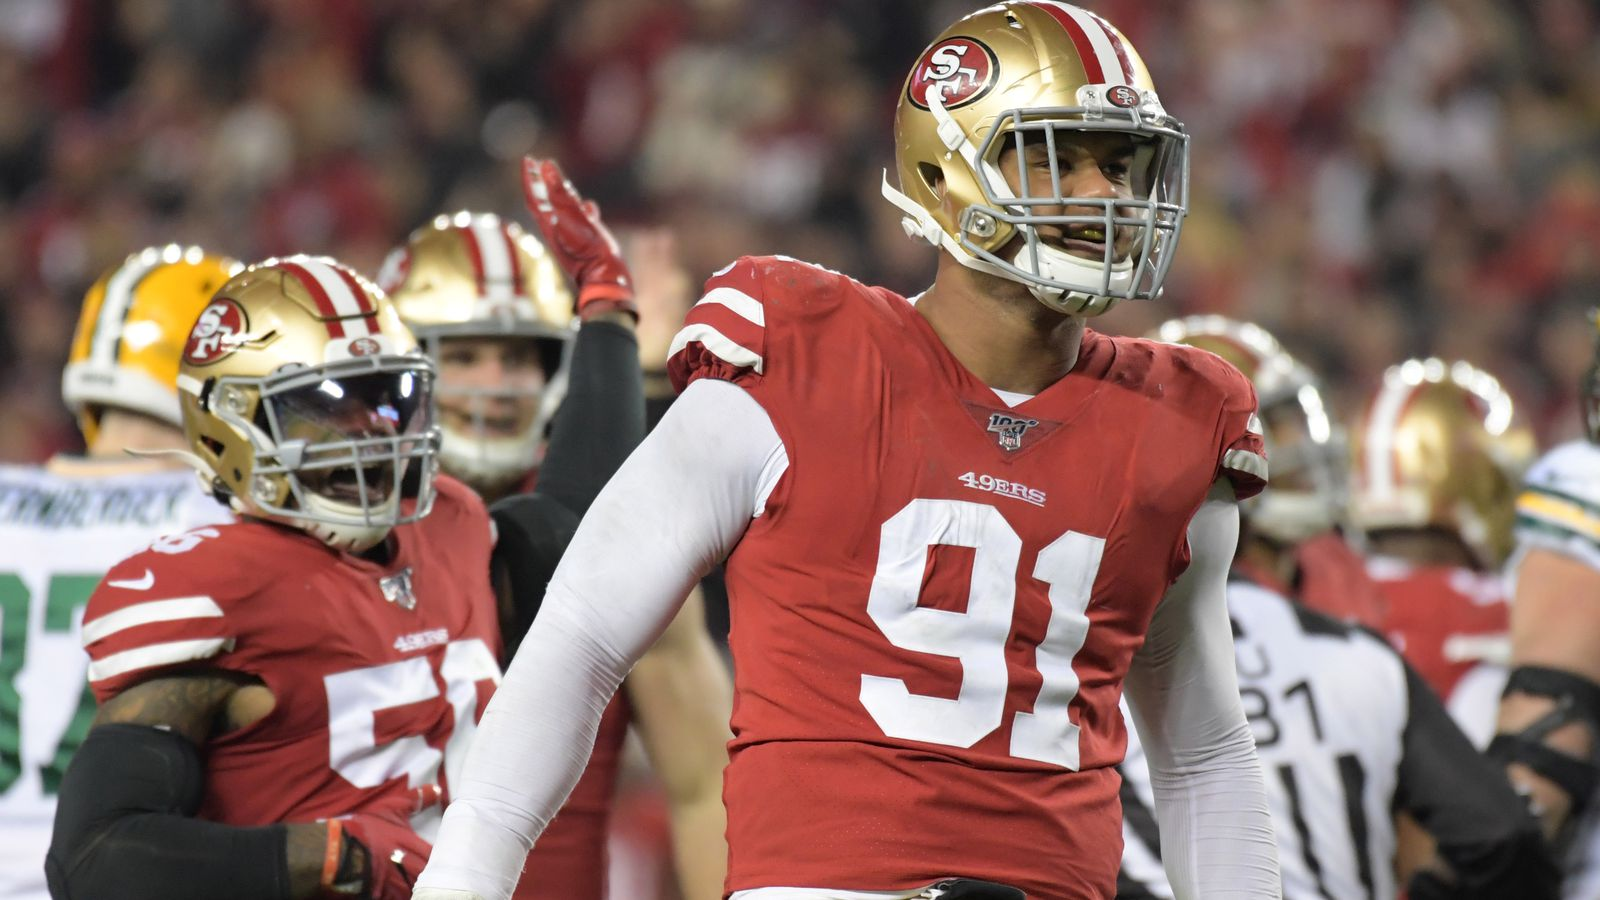 What 49ers player were you wrong about for 2019?